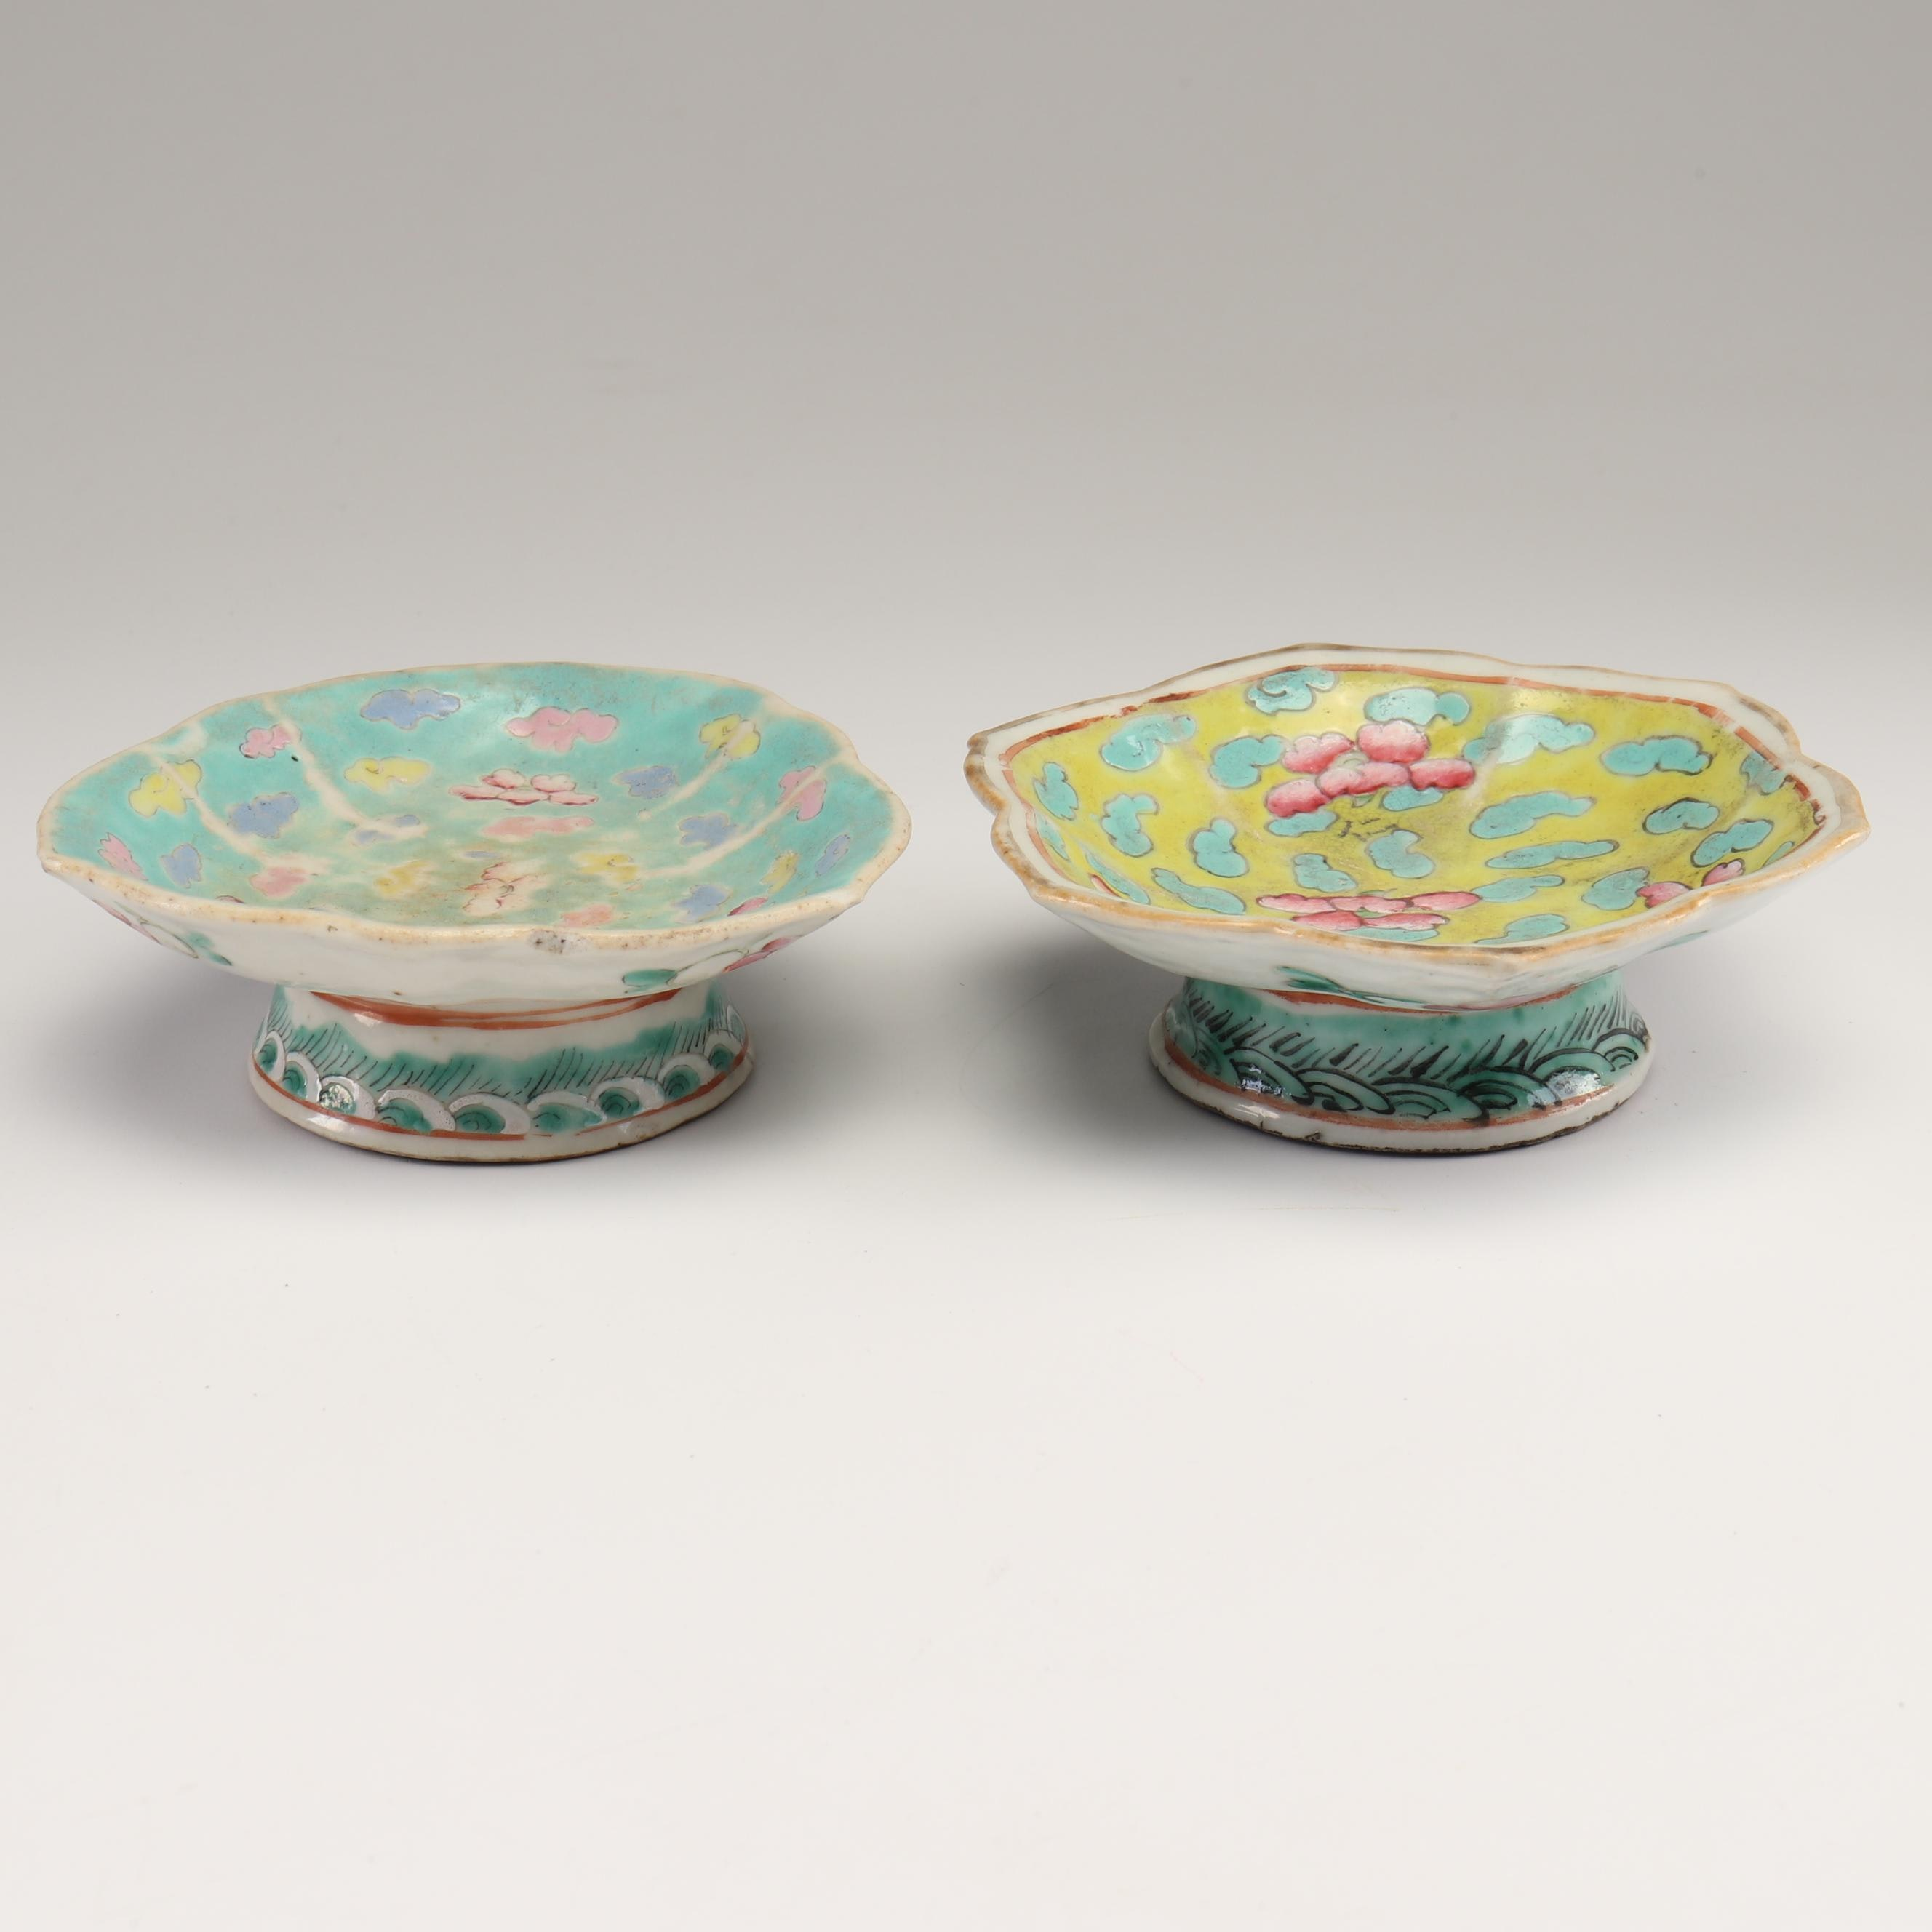 Chinese Stoneware Pedestal Dishes, Early 20th Century